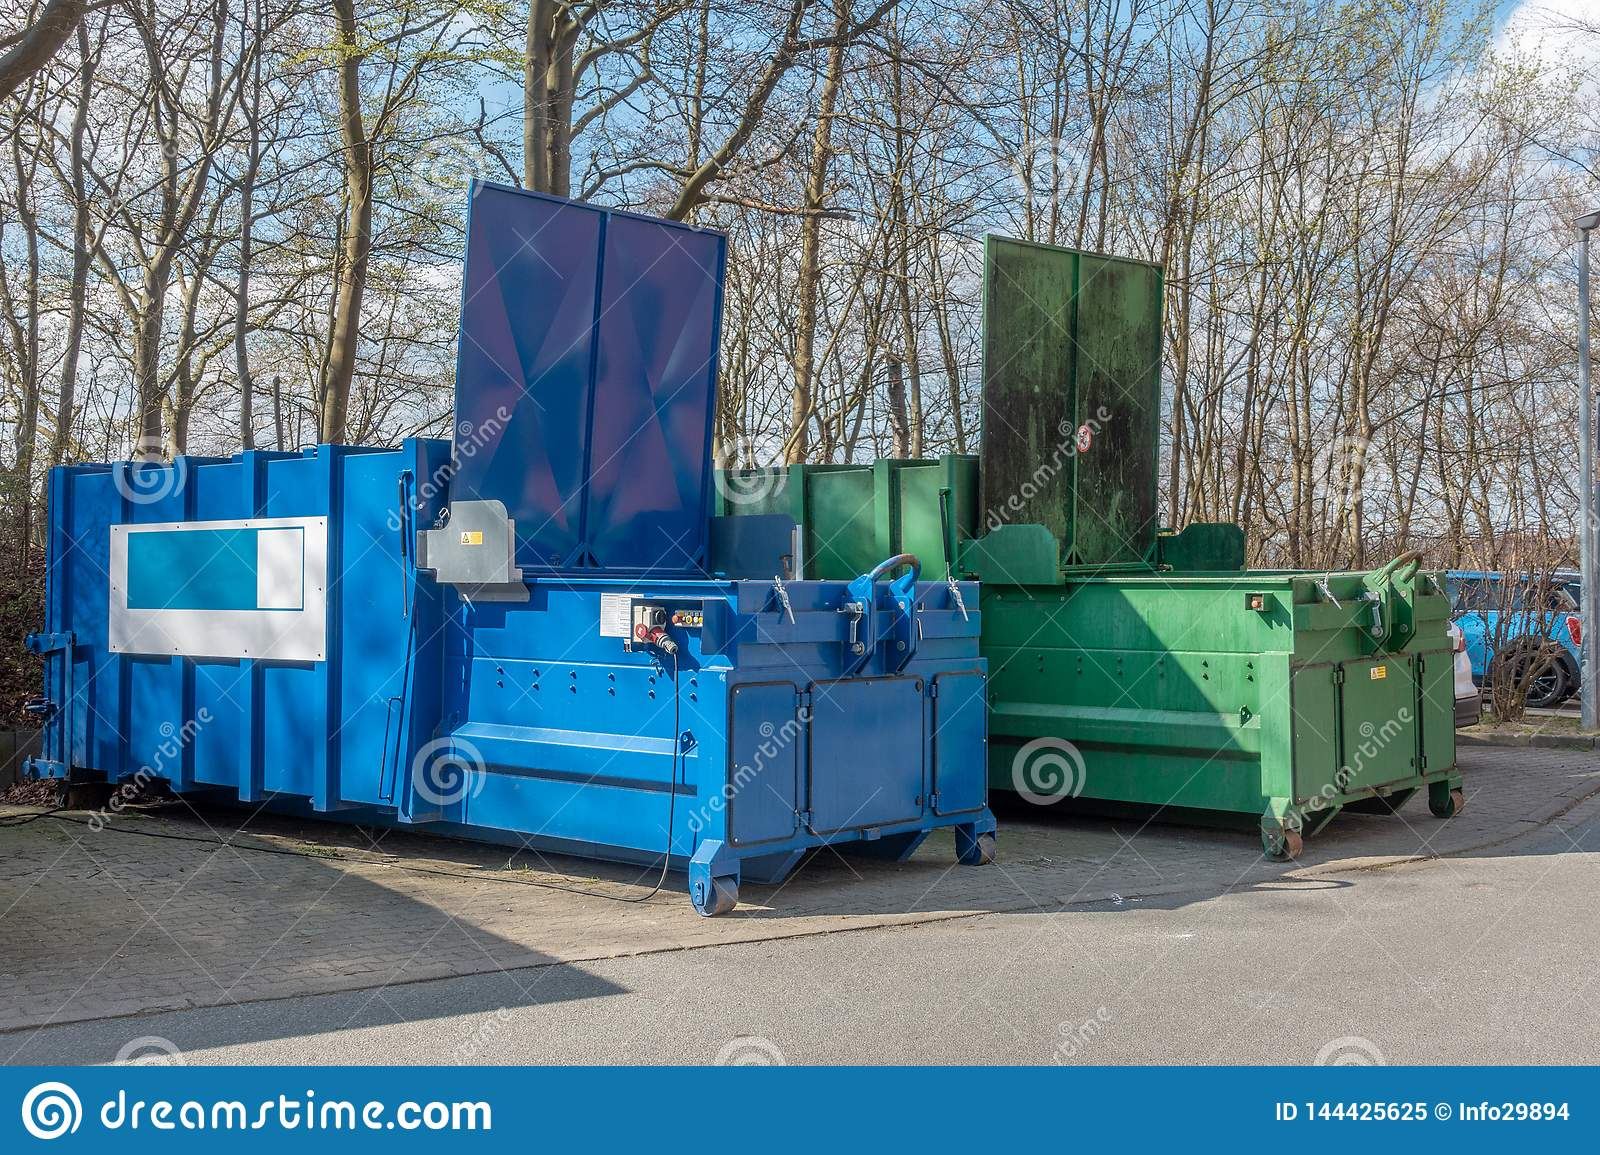 2 large garbage compactors standing on a hospital site